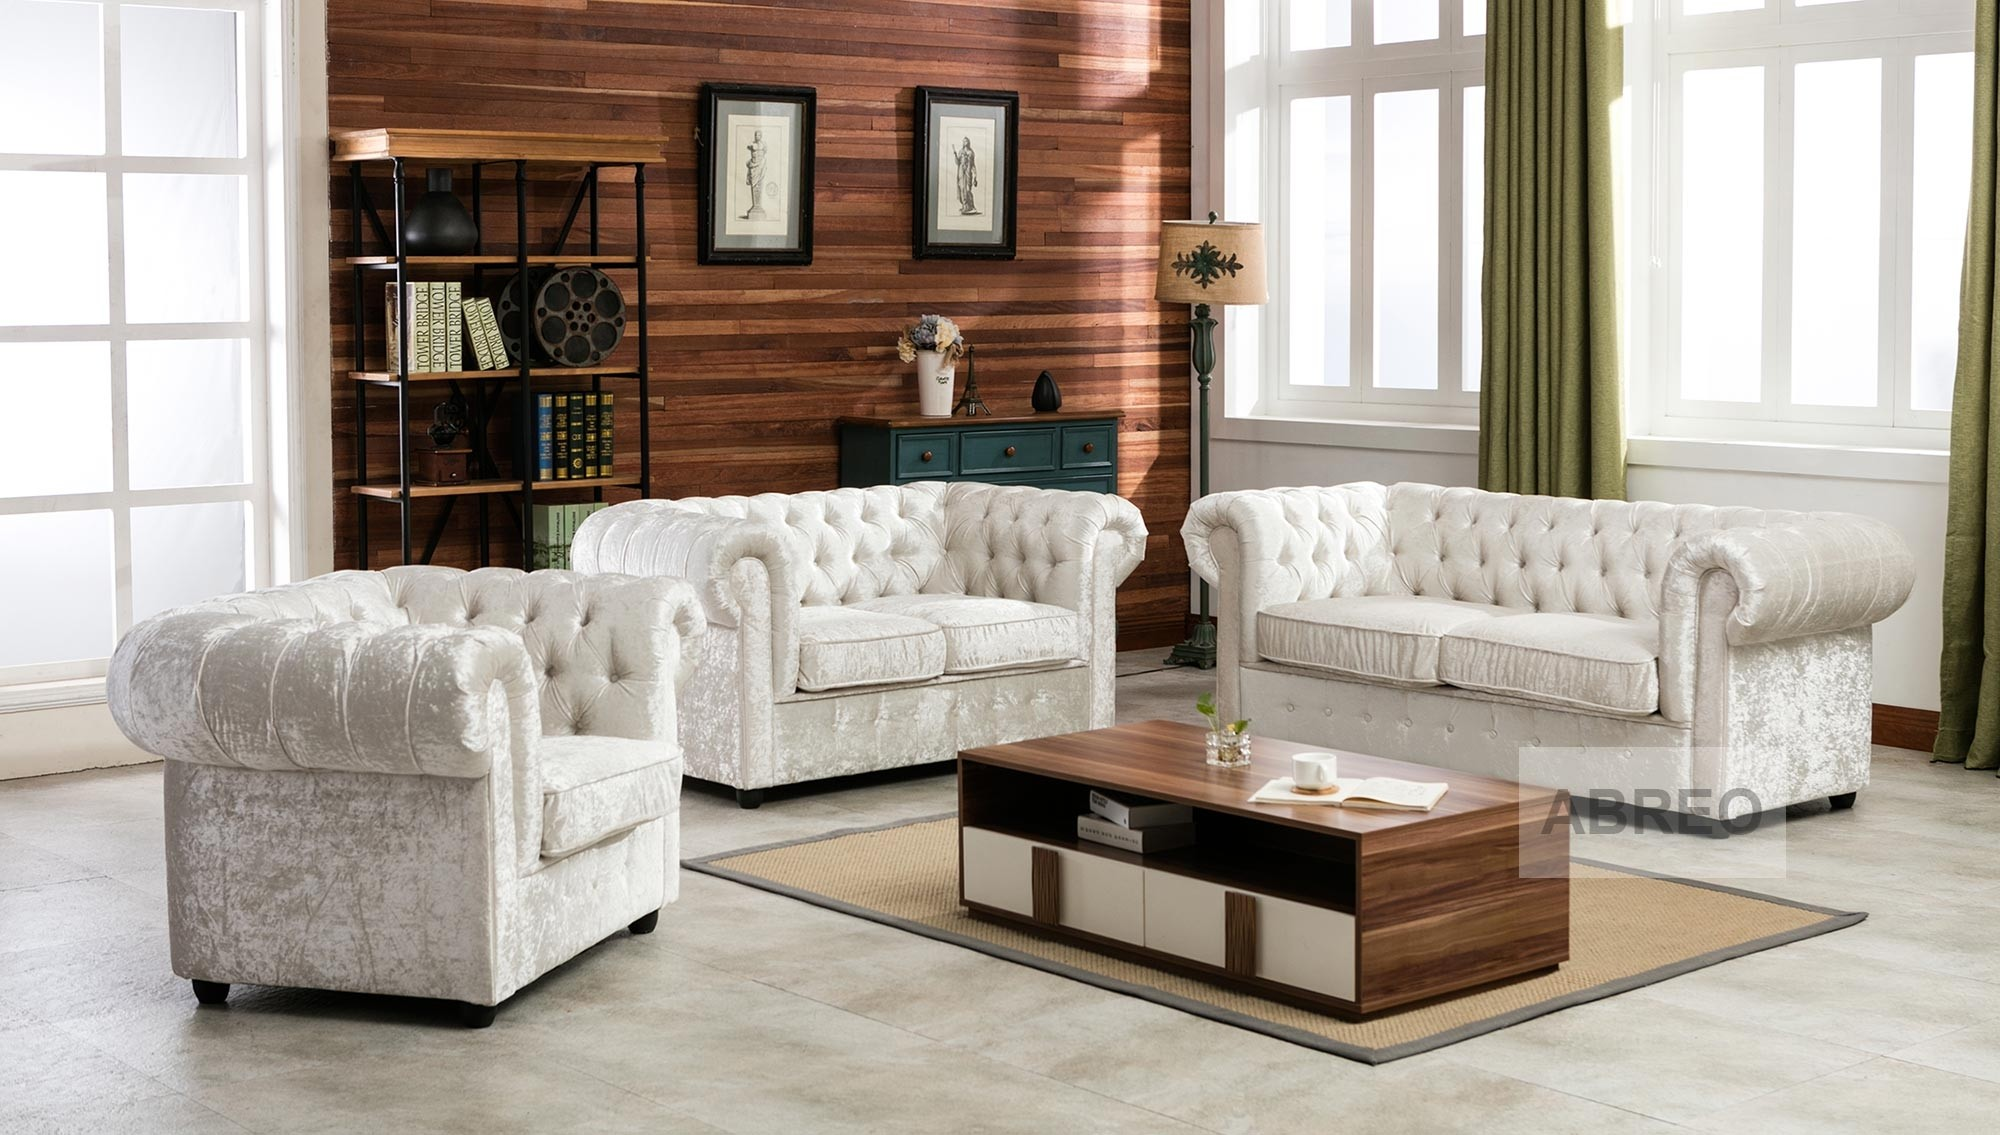 Empire Arctic Silver Crushed Velvet Chesterfields Abreo